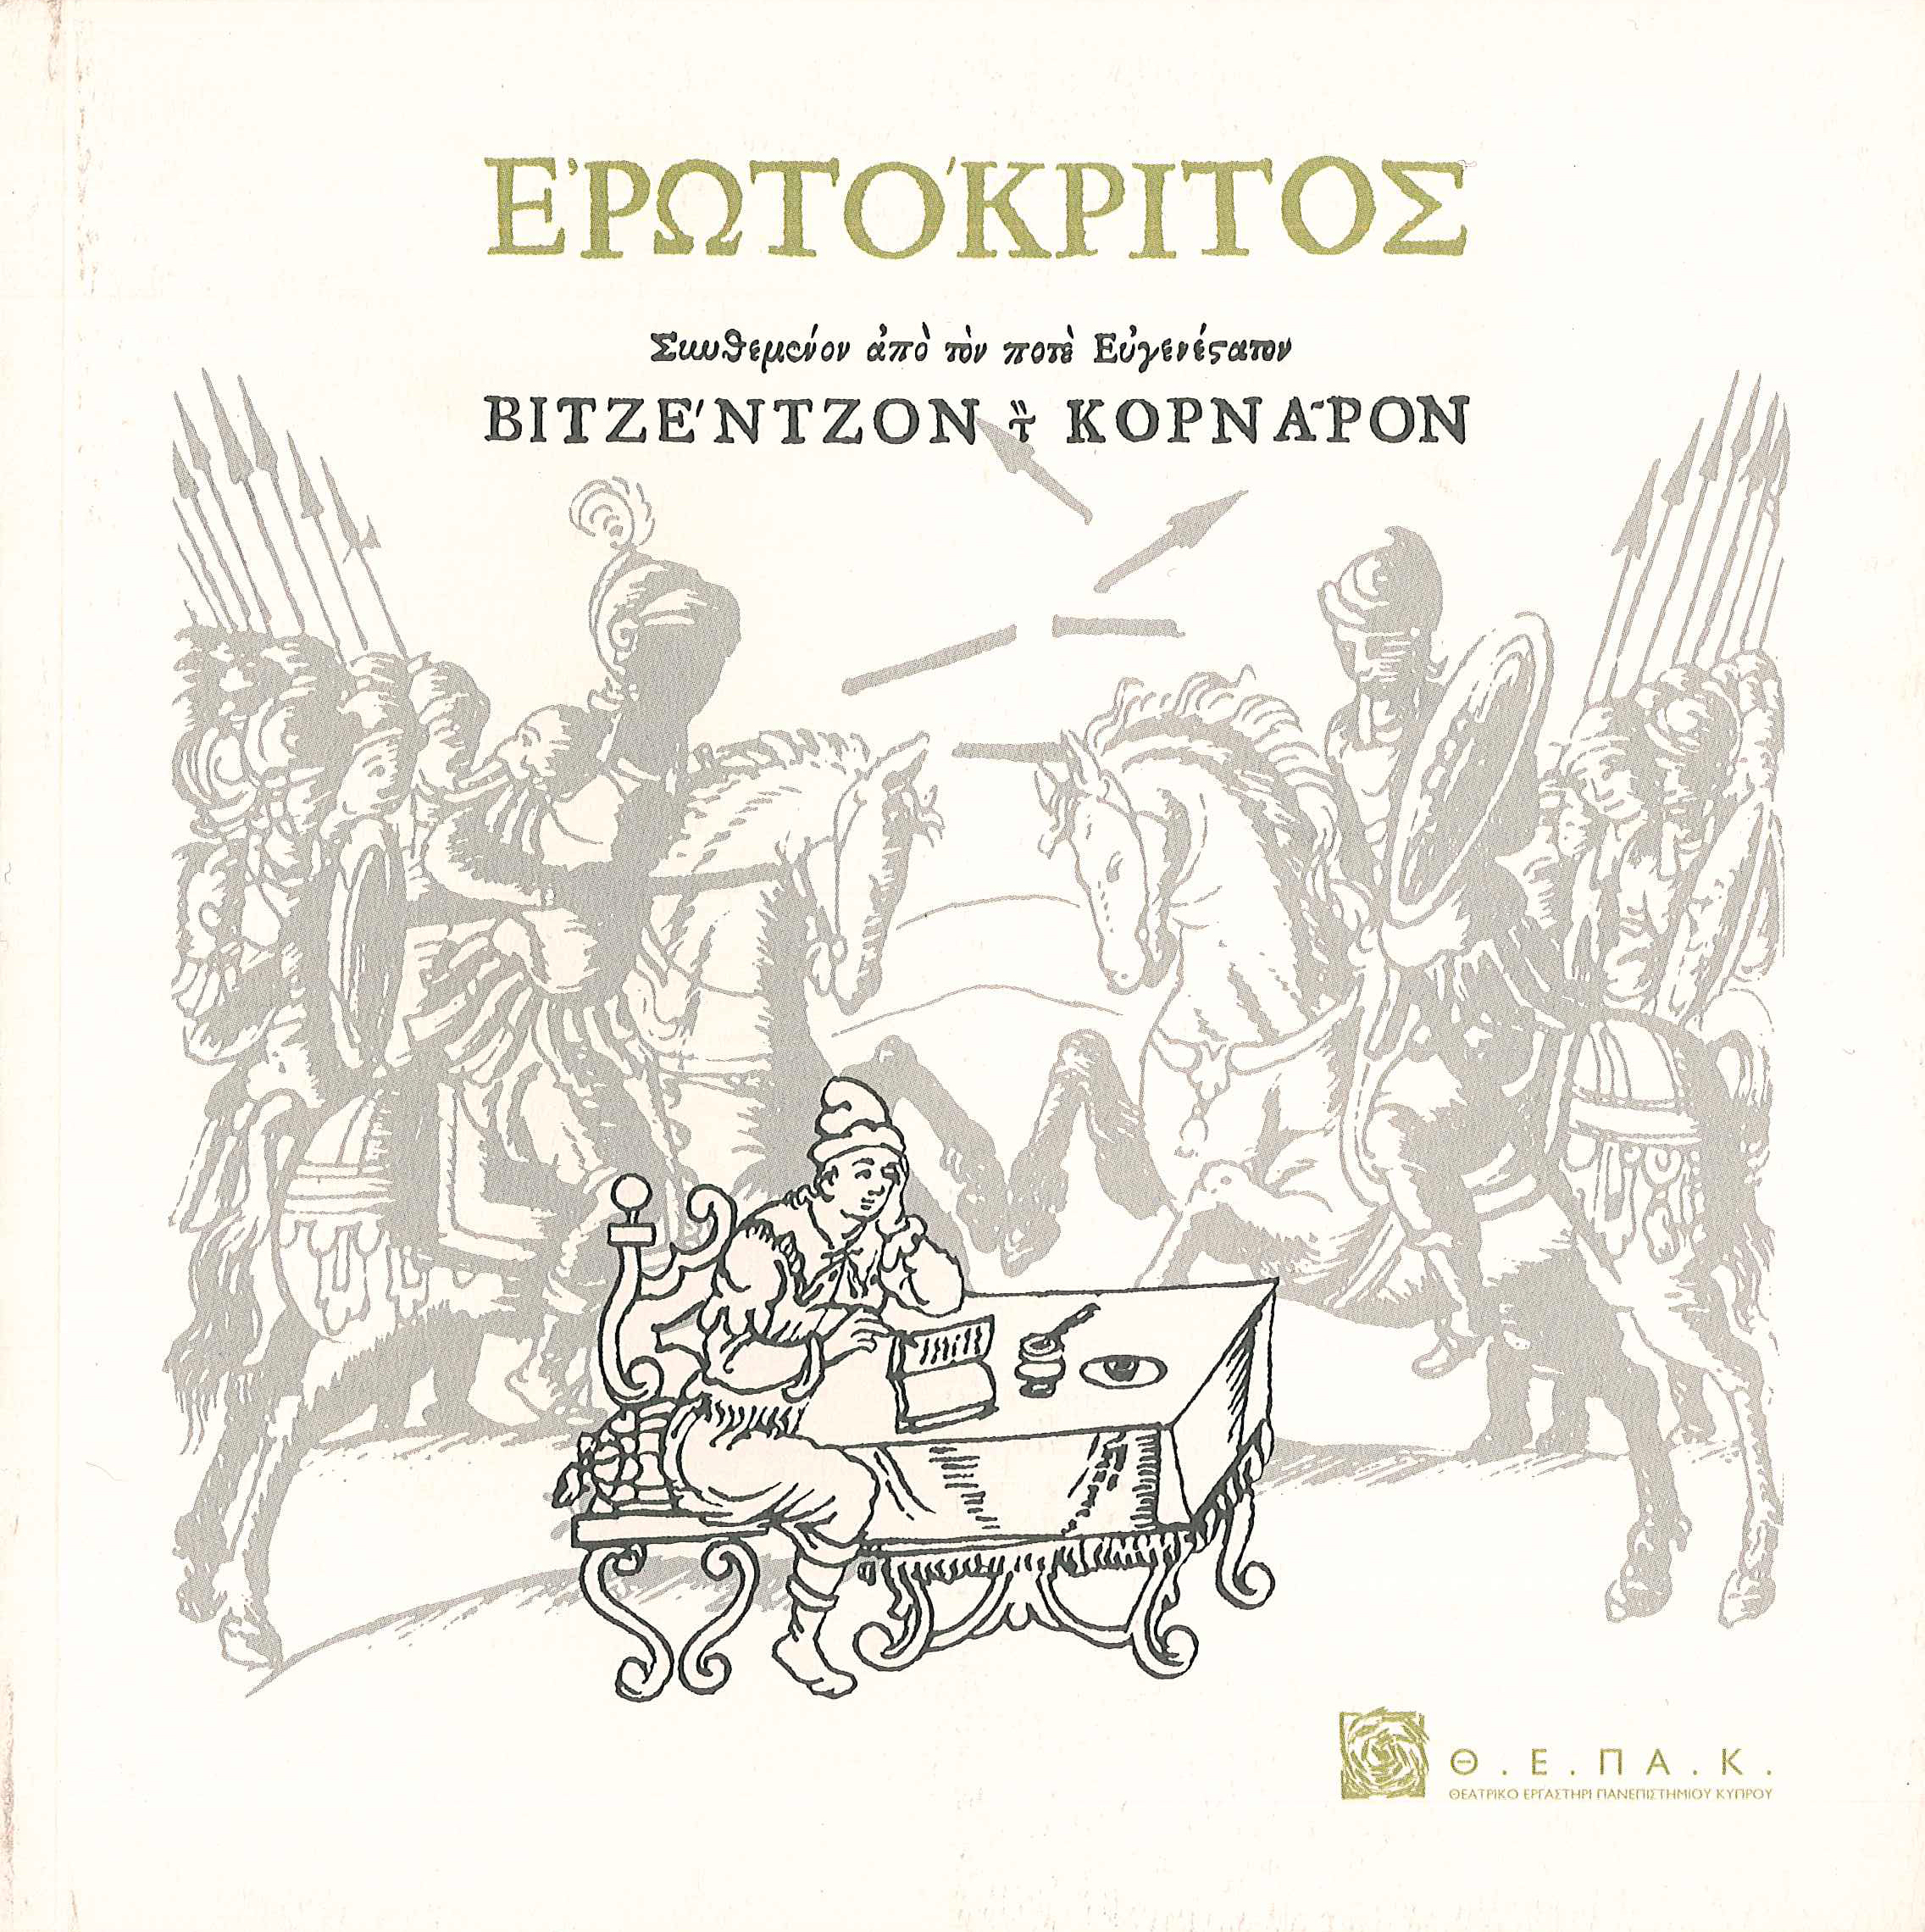 Erotokritos Italian-Booklet-Cover